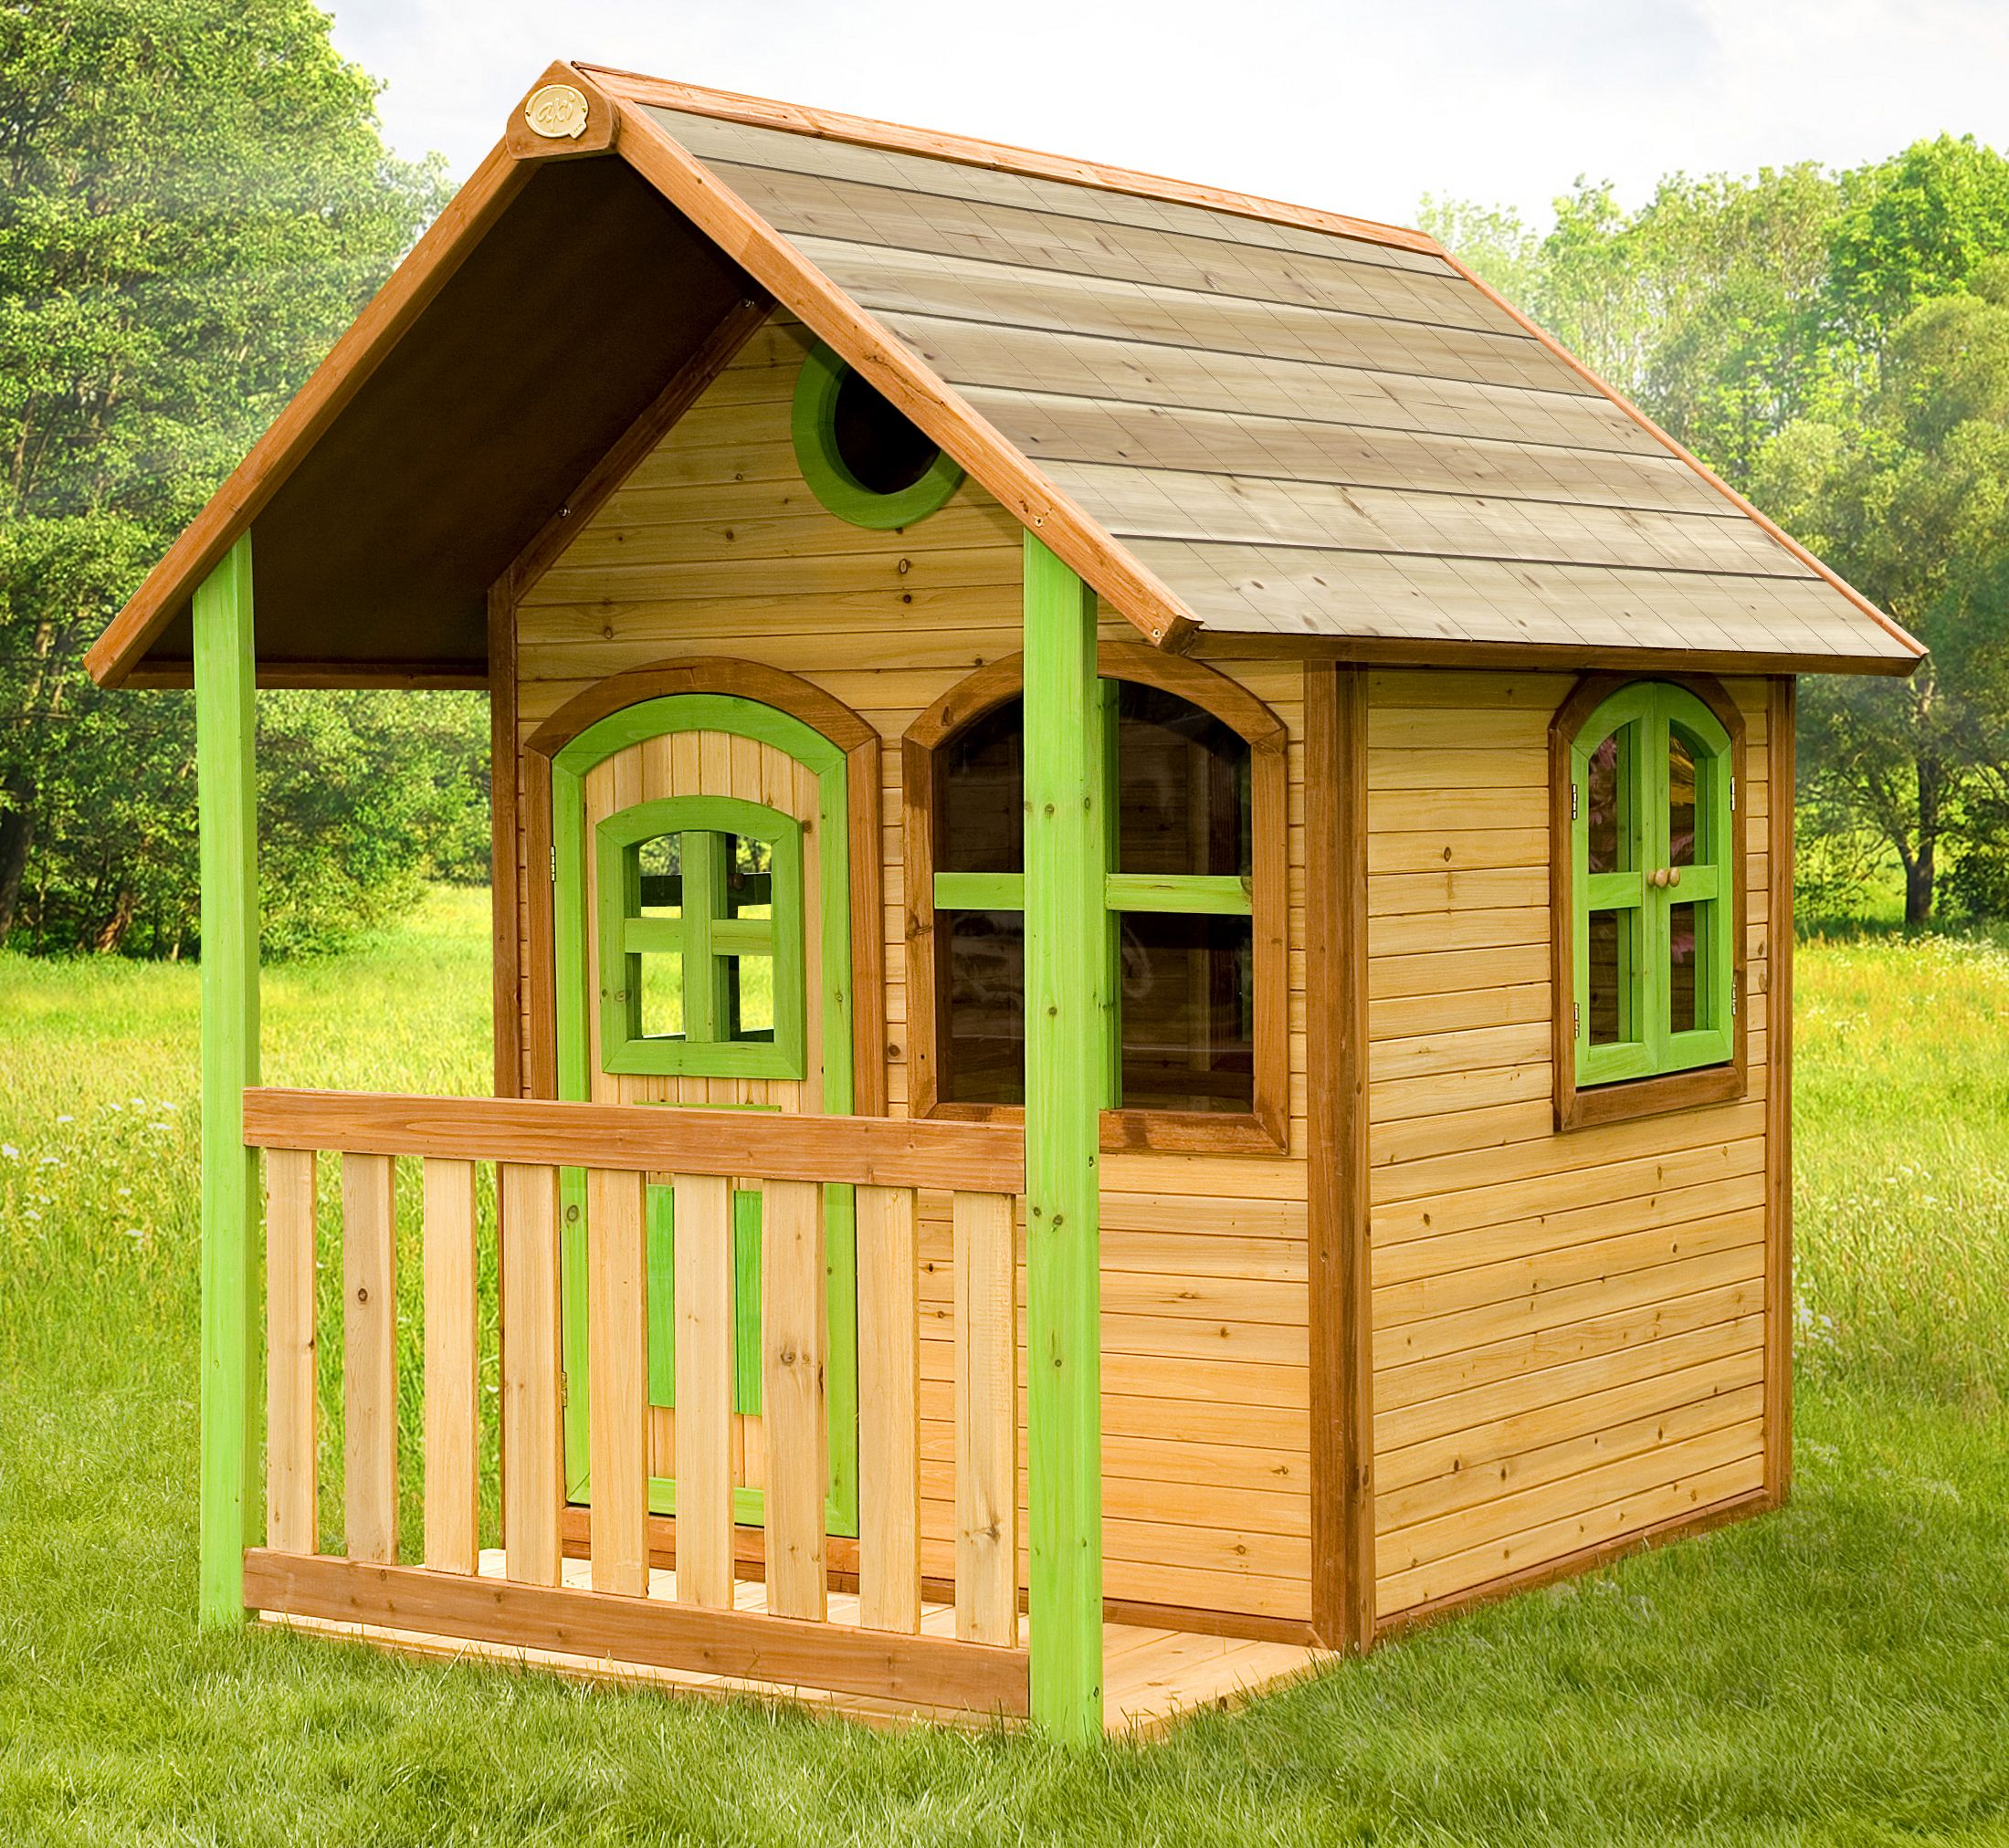 Maison Pour Enfant Exterieur playhouse alex. in and around an axi playhouse, children can